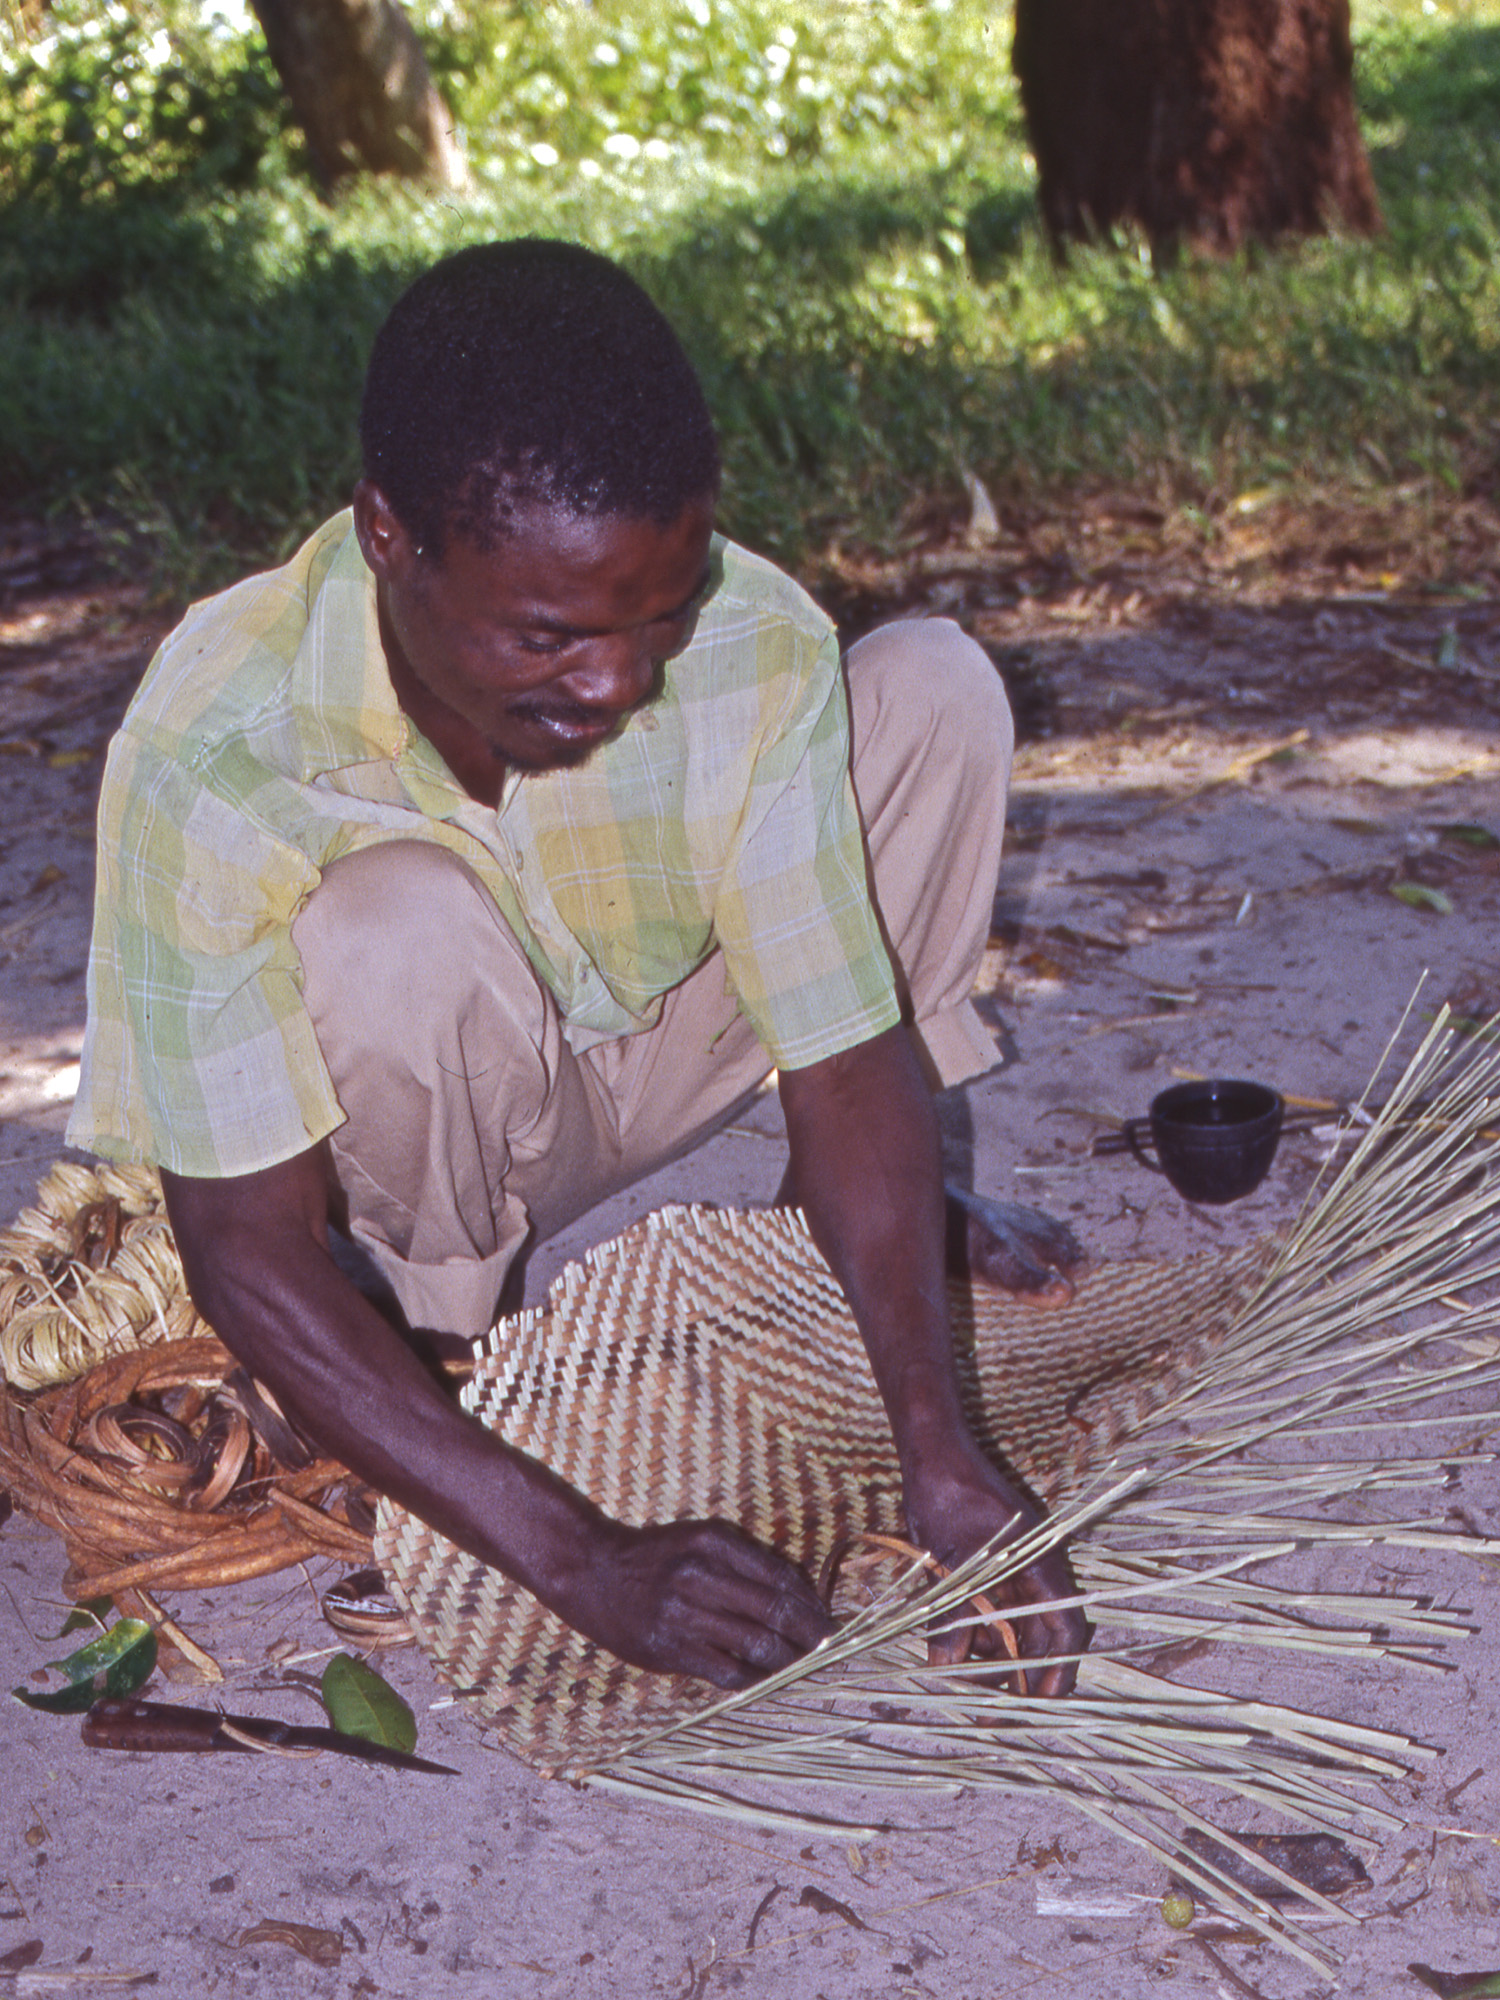 VaMutondo weaving a winnowing mat